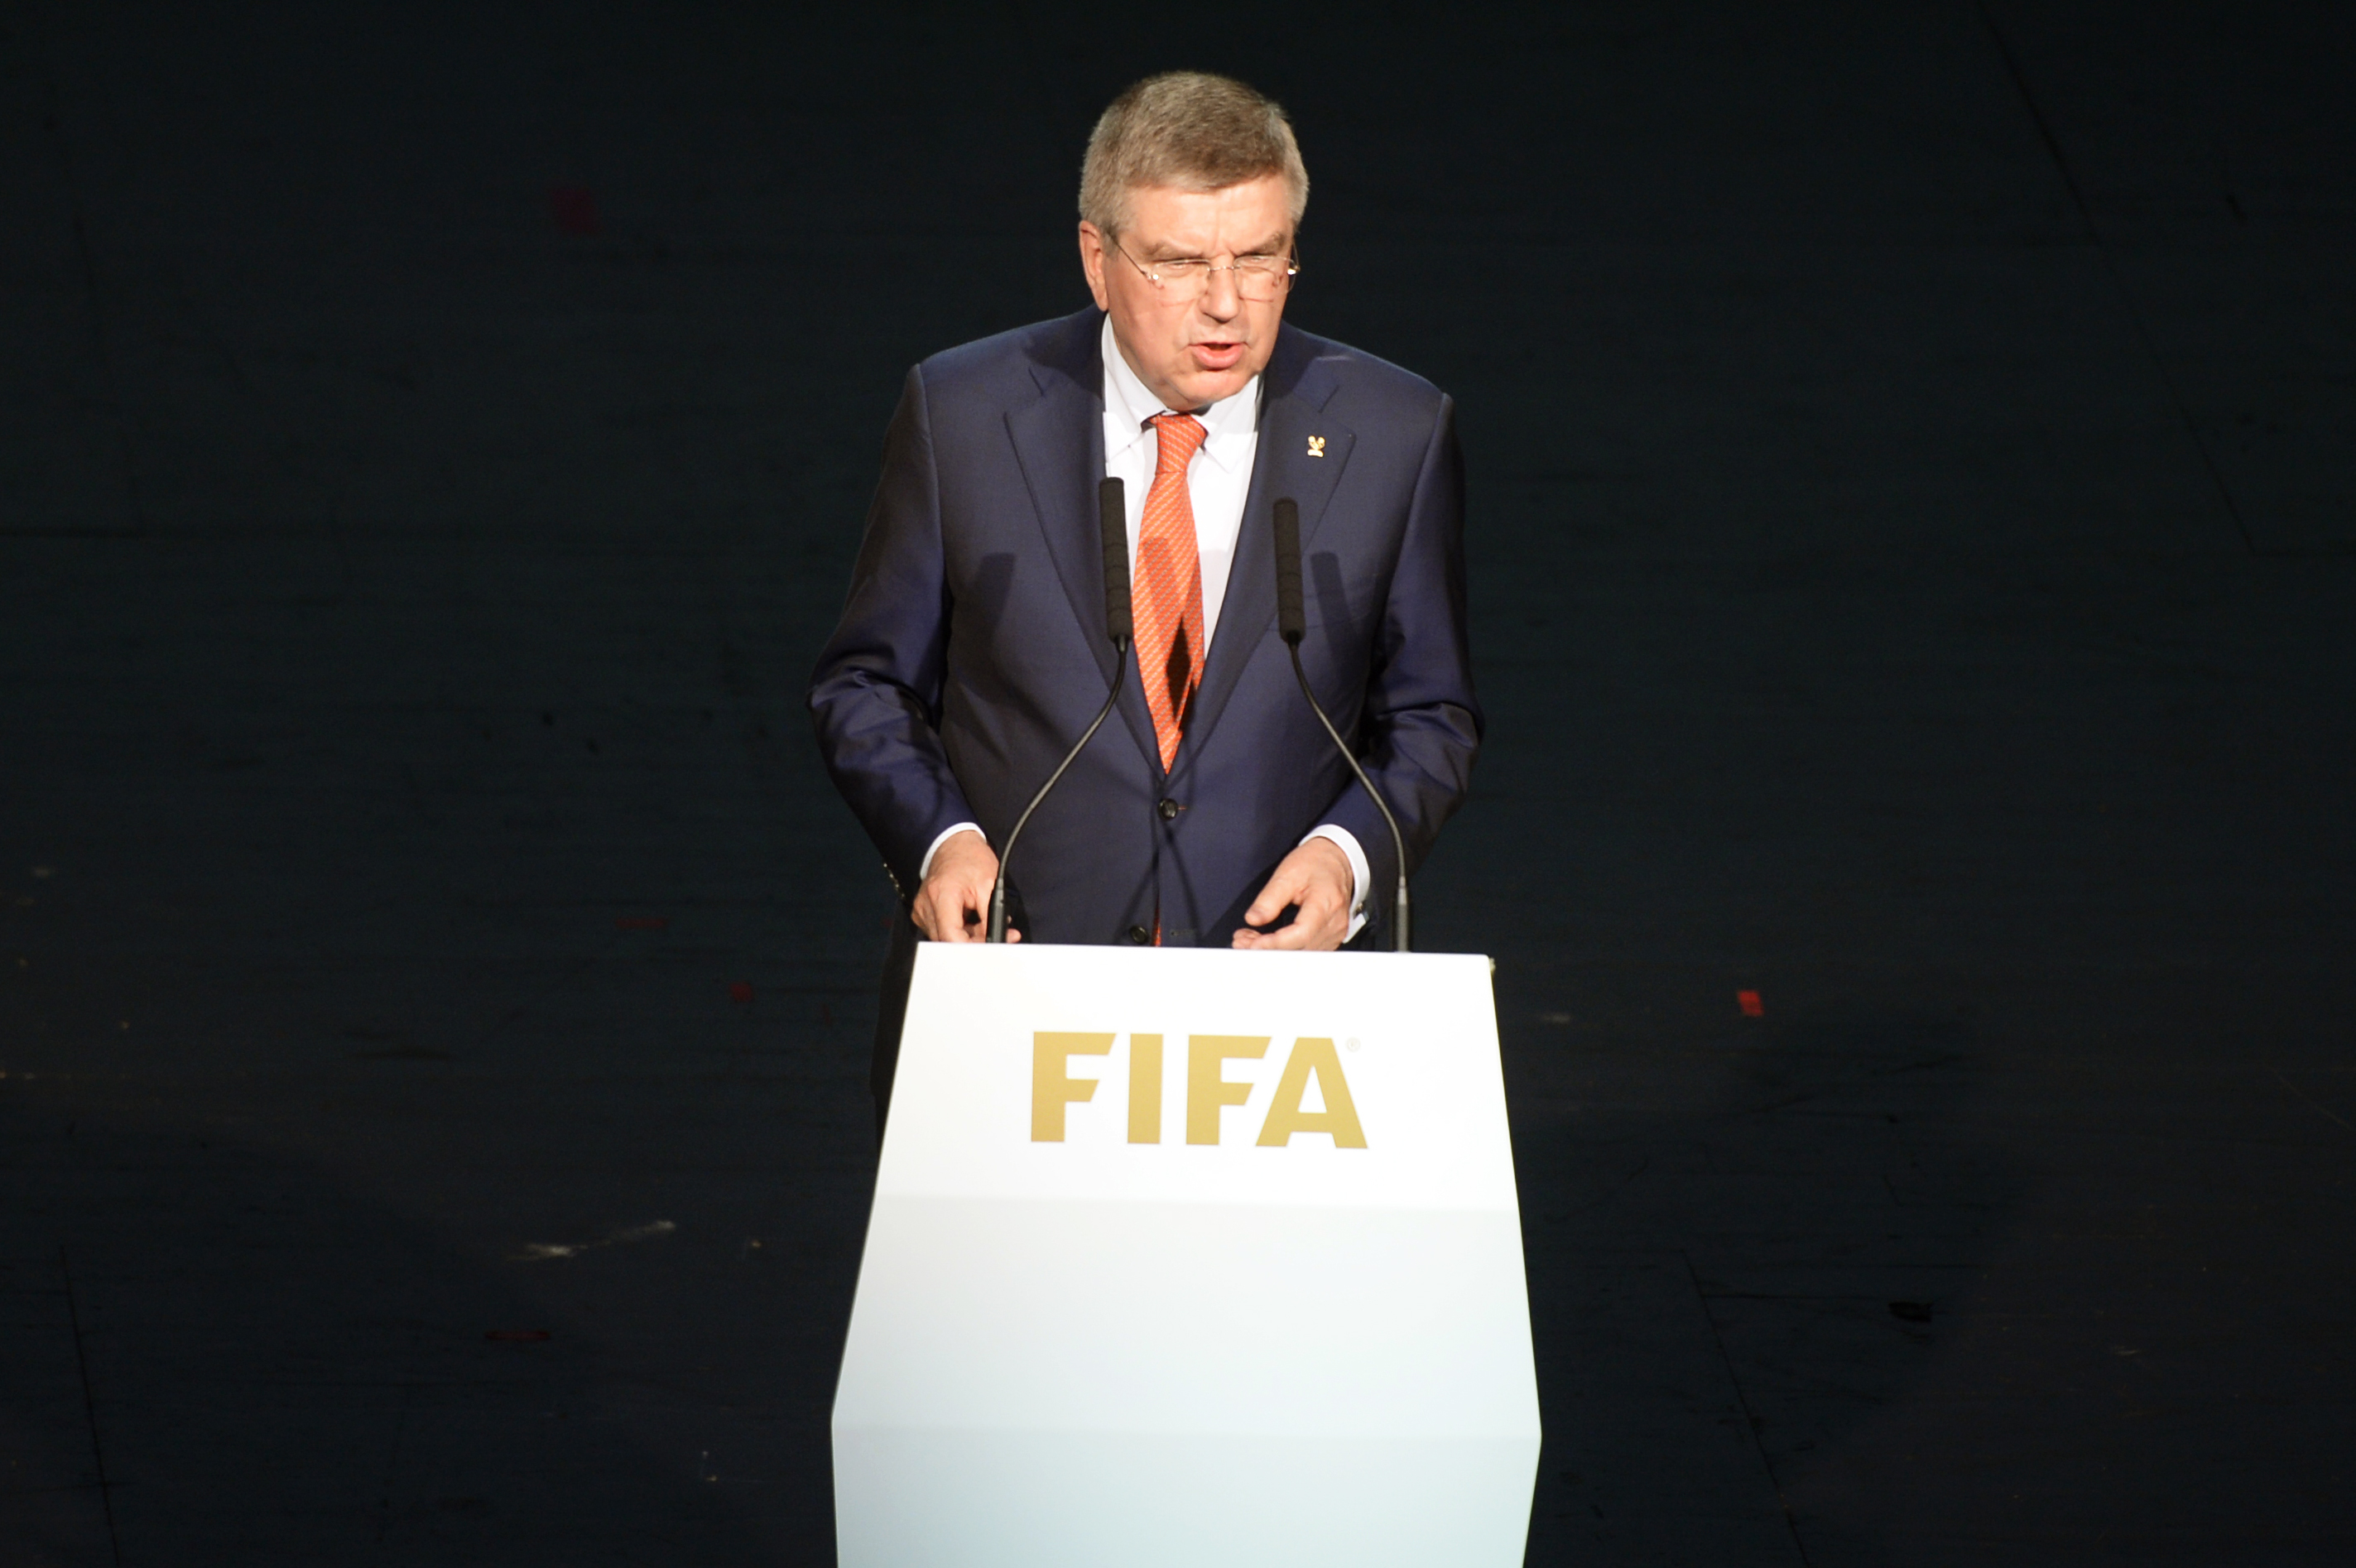 President of the International Olympic Committee, IOC, Thomas Bach delivers a speech at the opening ceremony of the FIFA congress in Zuerich, Switzerland on Thursday May 28, 2015. The FIFA congress with the president's election is scheduled for Friday, Ma